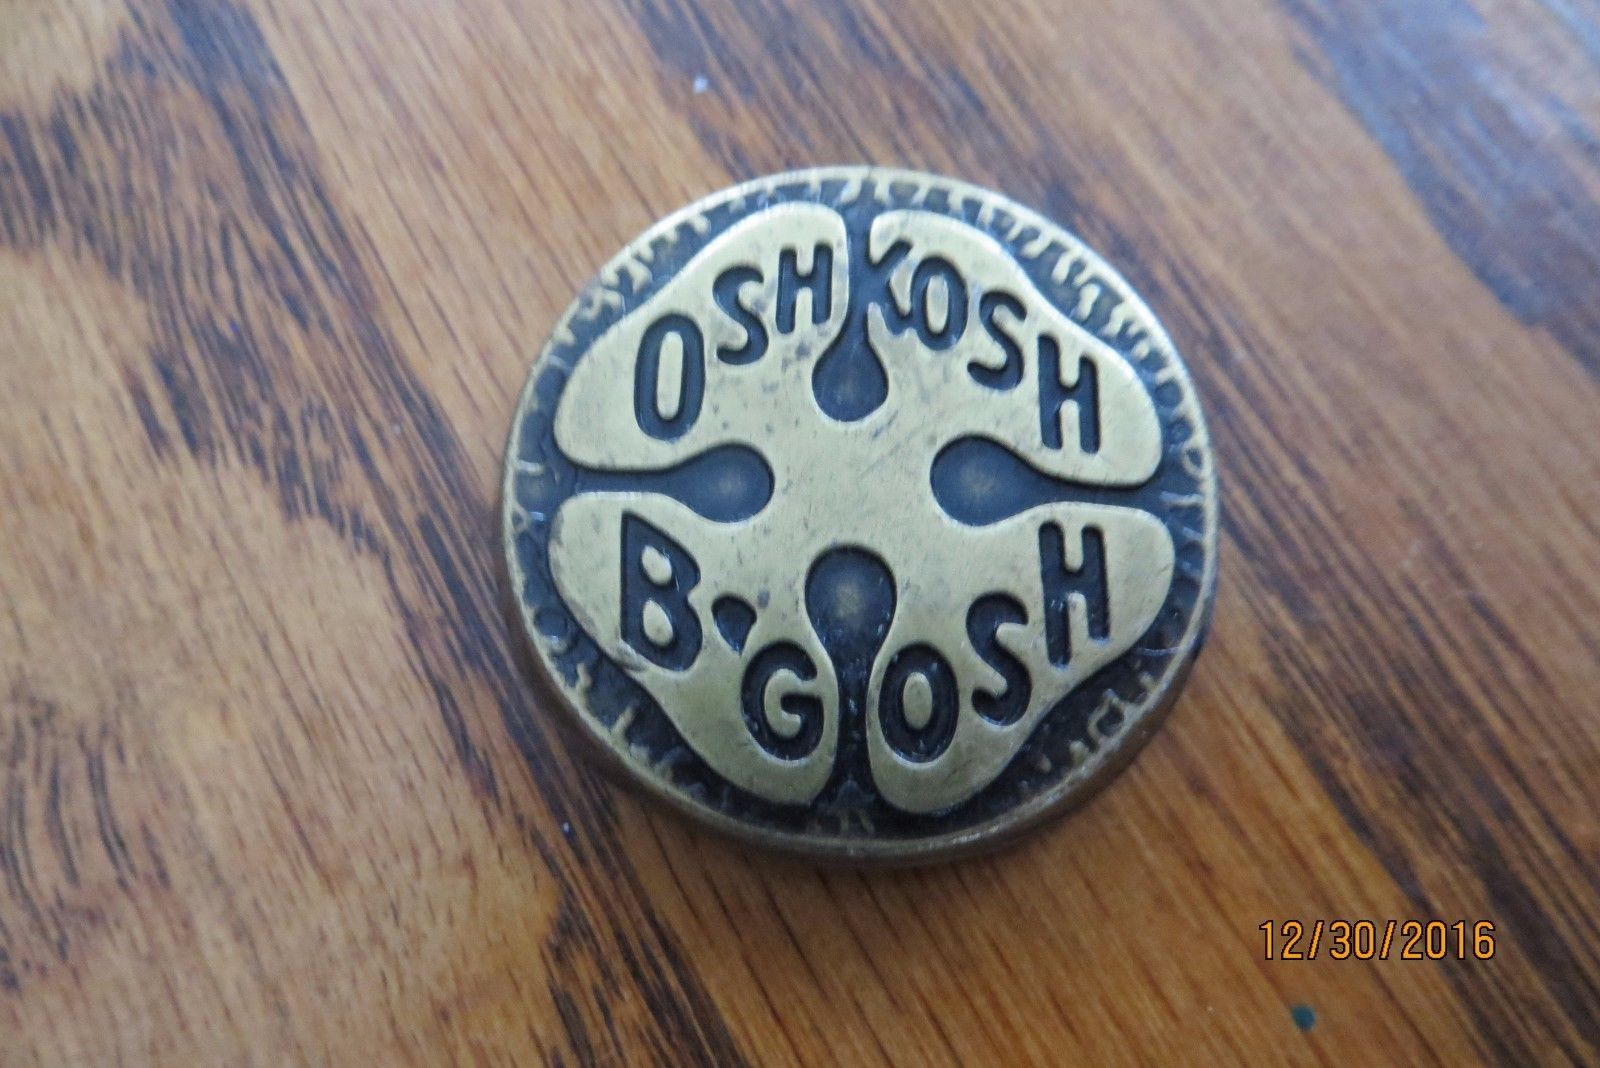 Oshkosh B'gosh solid brass trivit paperweight advertising company logo obsolete